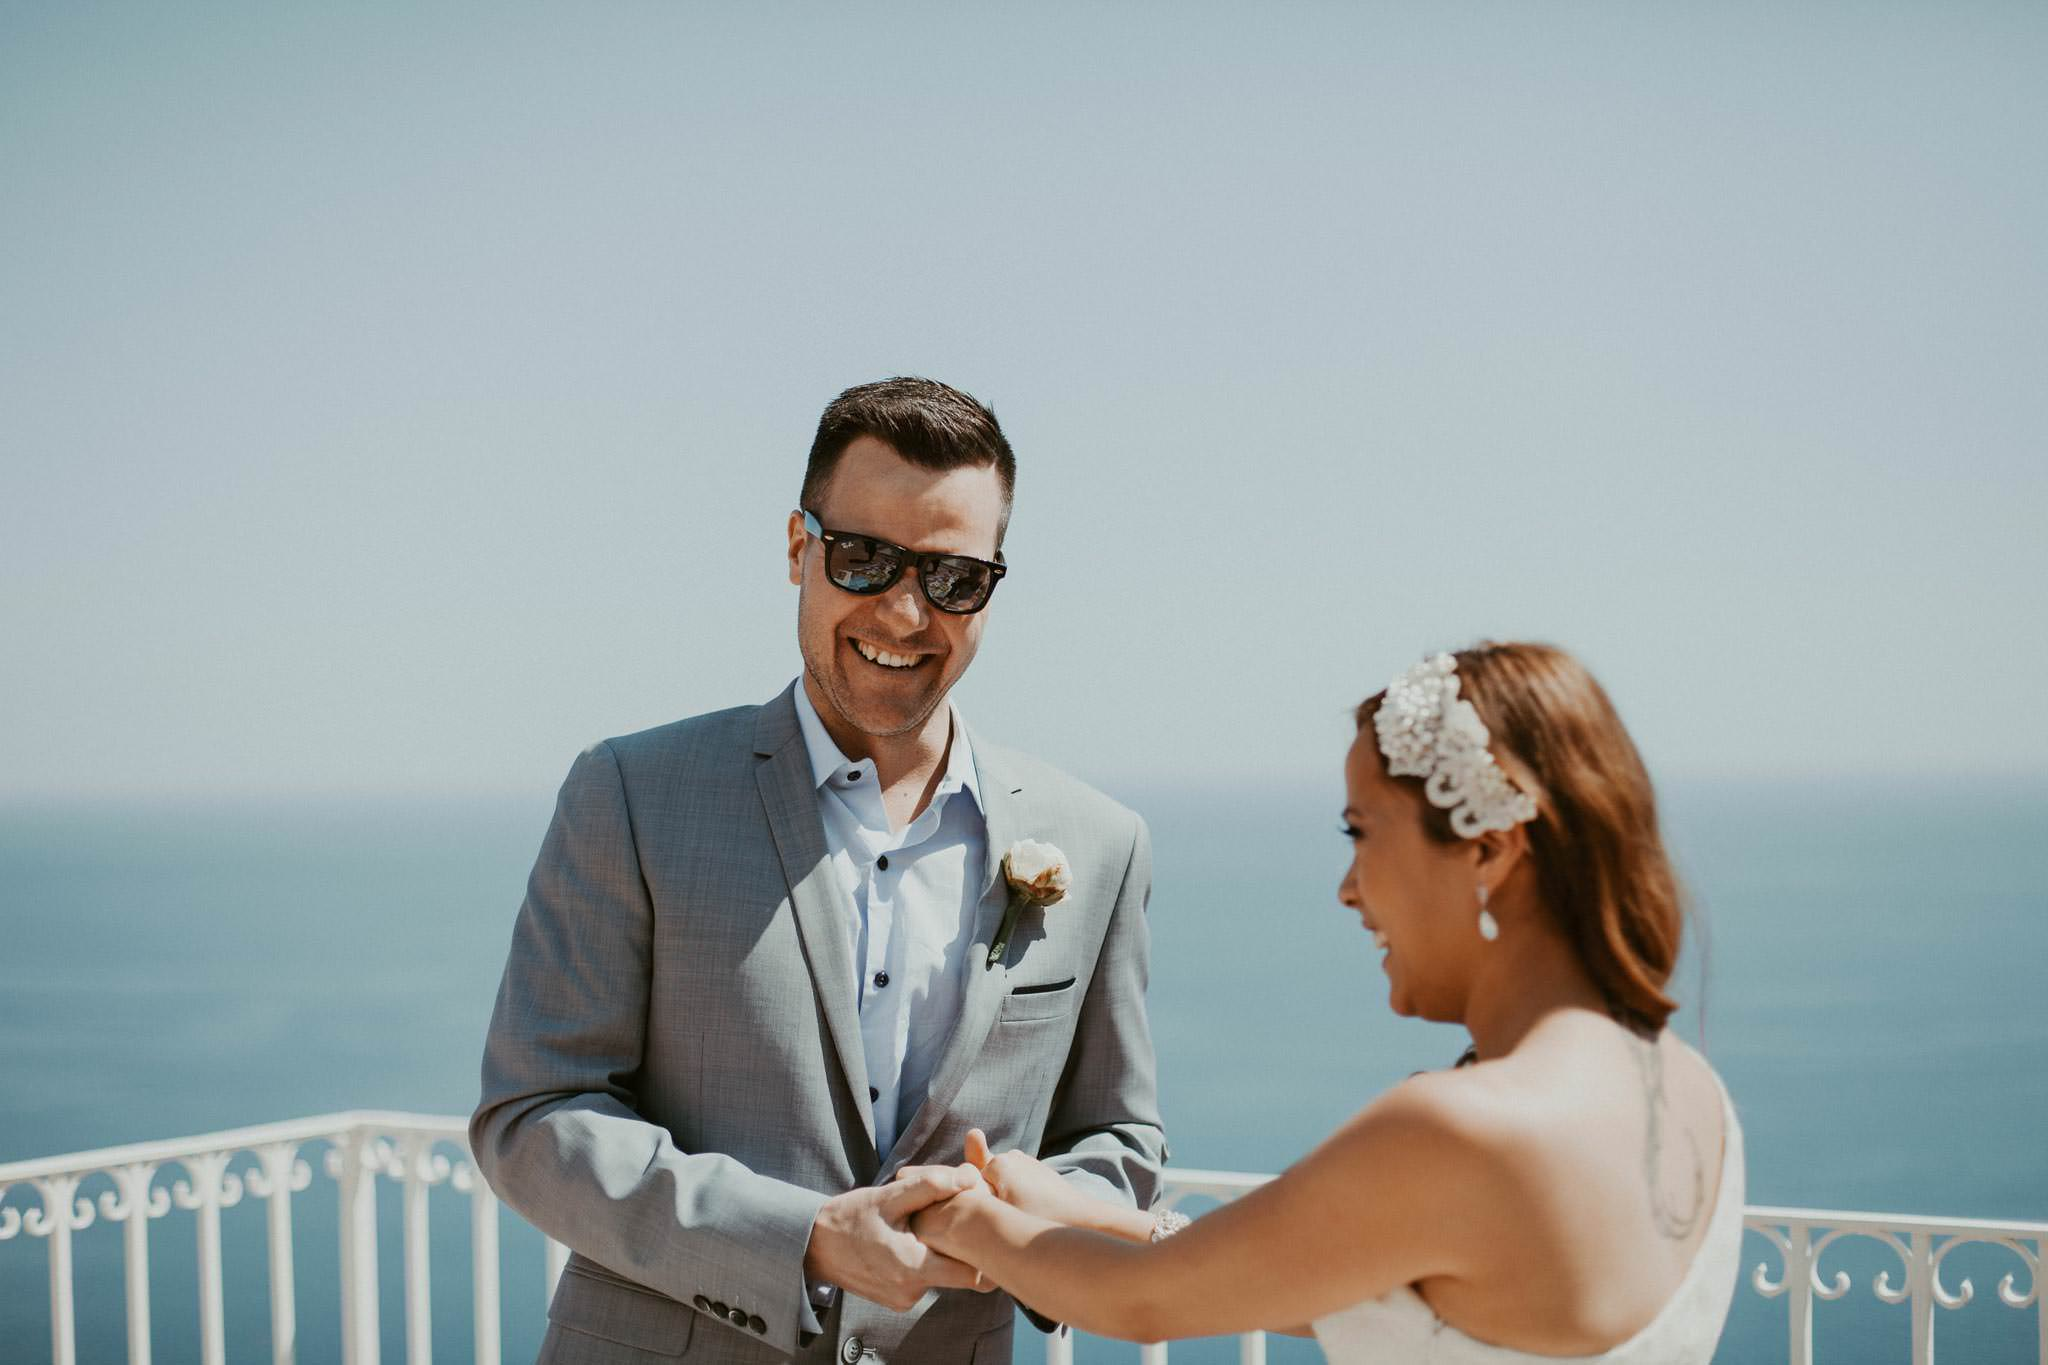 positano-wedding-photographer-043